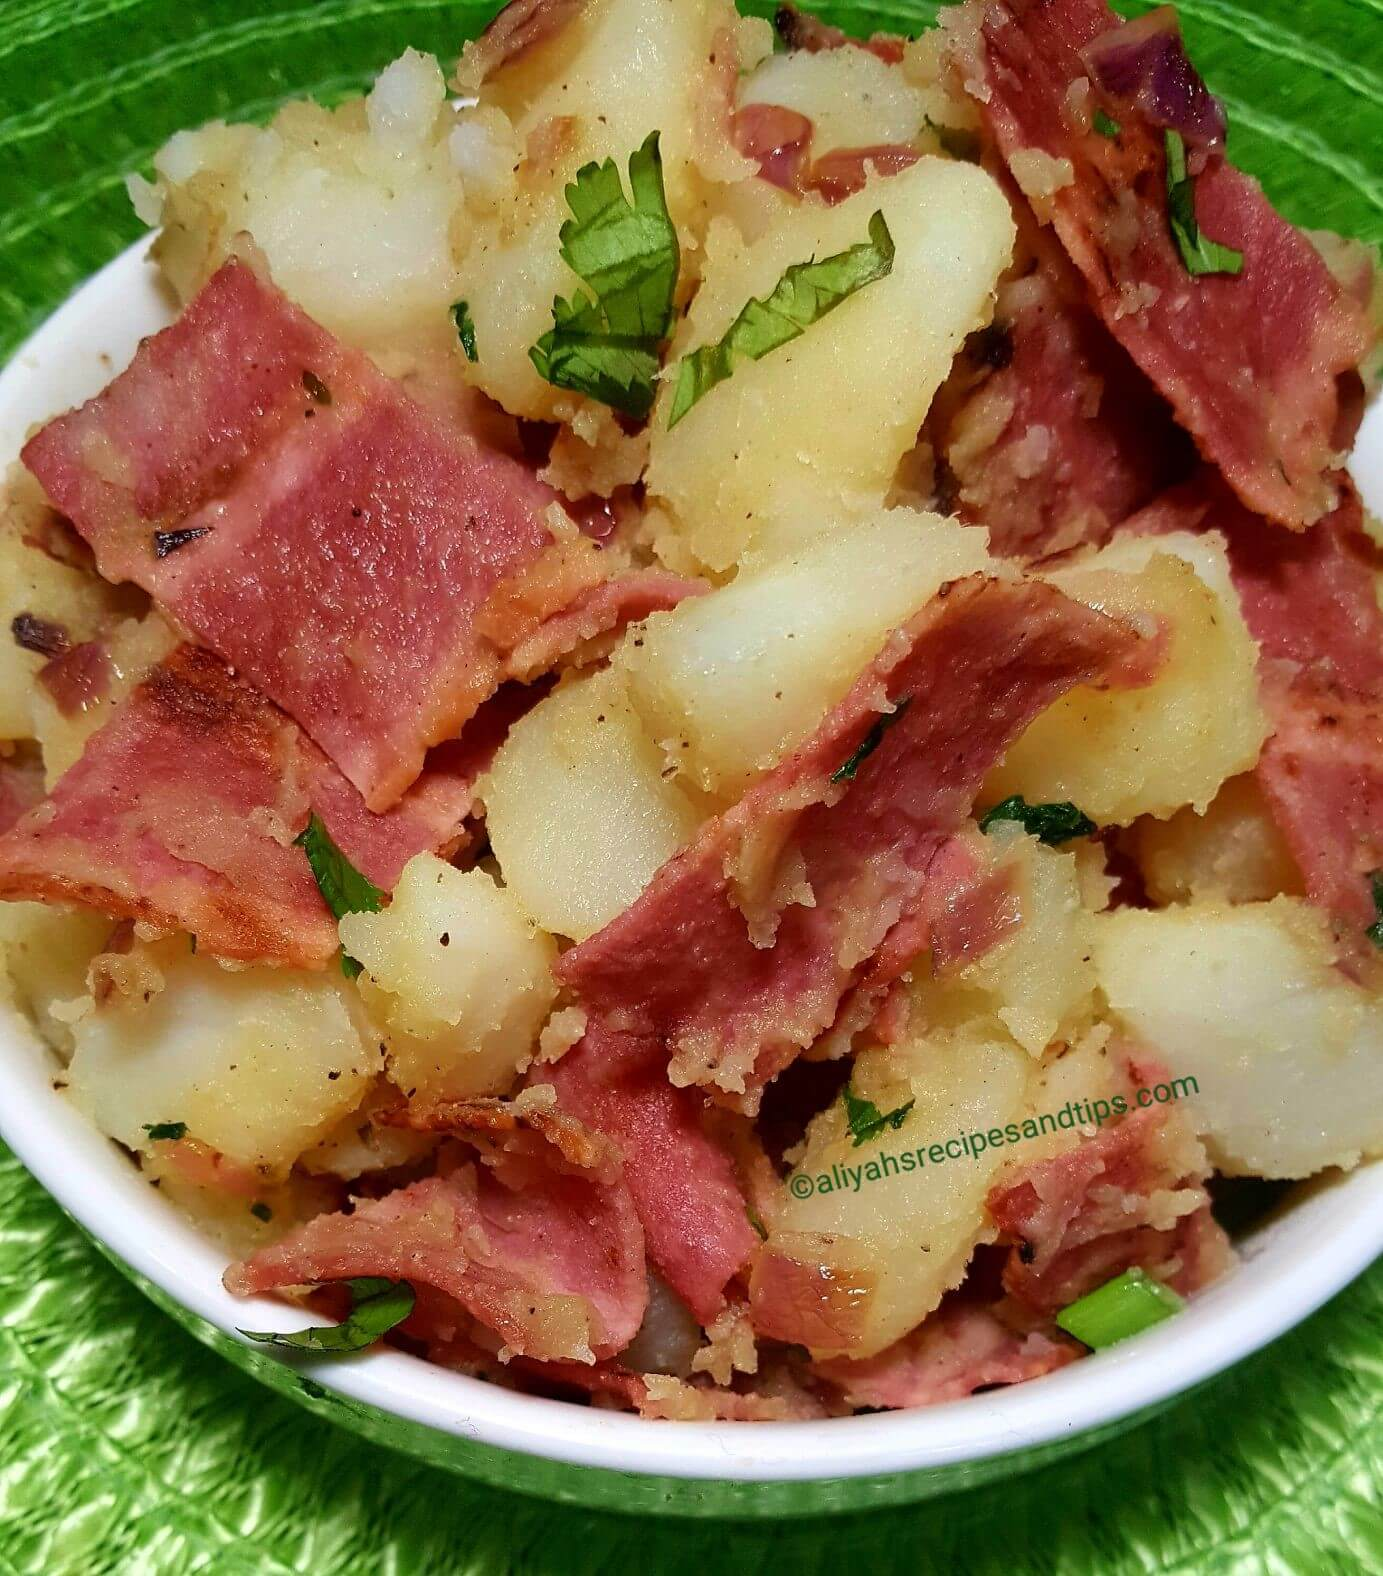 german potato salad, potato, food network, Bratwurst, German style, Bavarian, old fashioned, mayonnaise, easy, recipe, mustard, bacon, authentic, cold, warm, traditional, potato salad, salad,